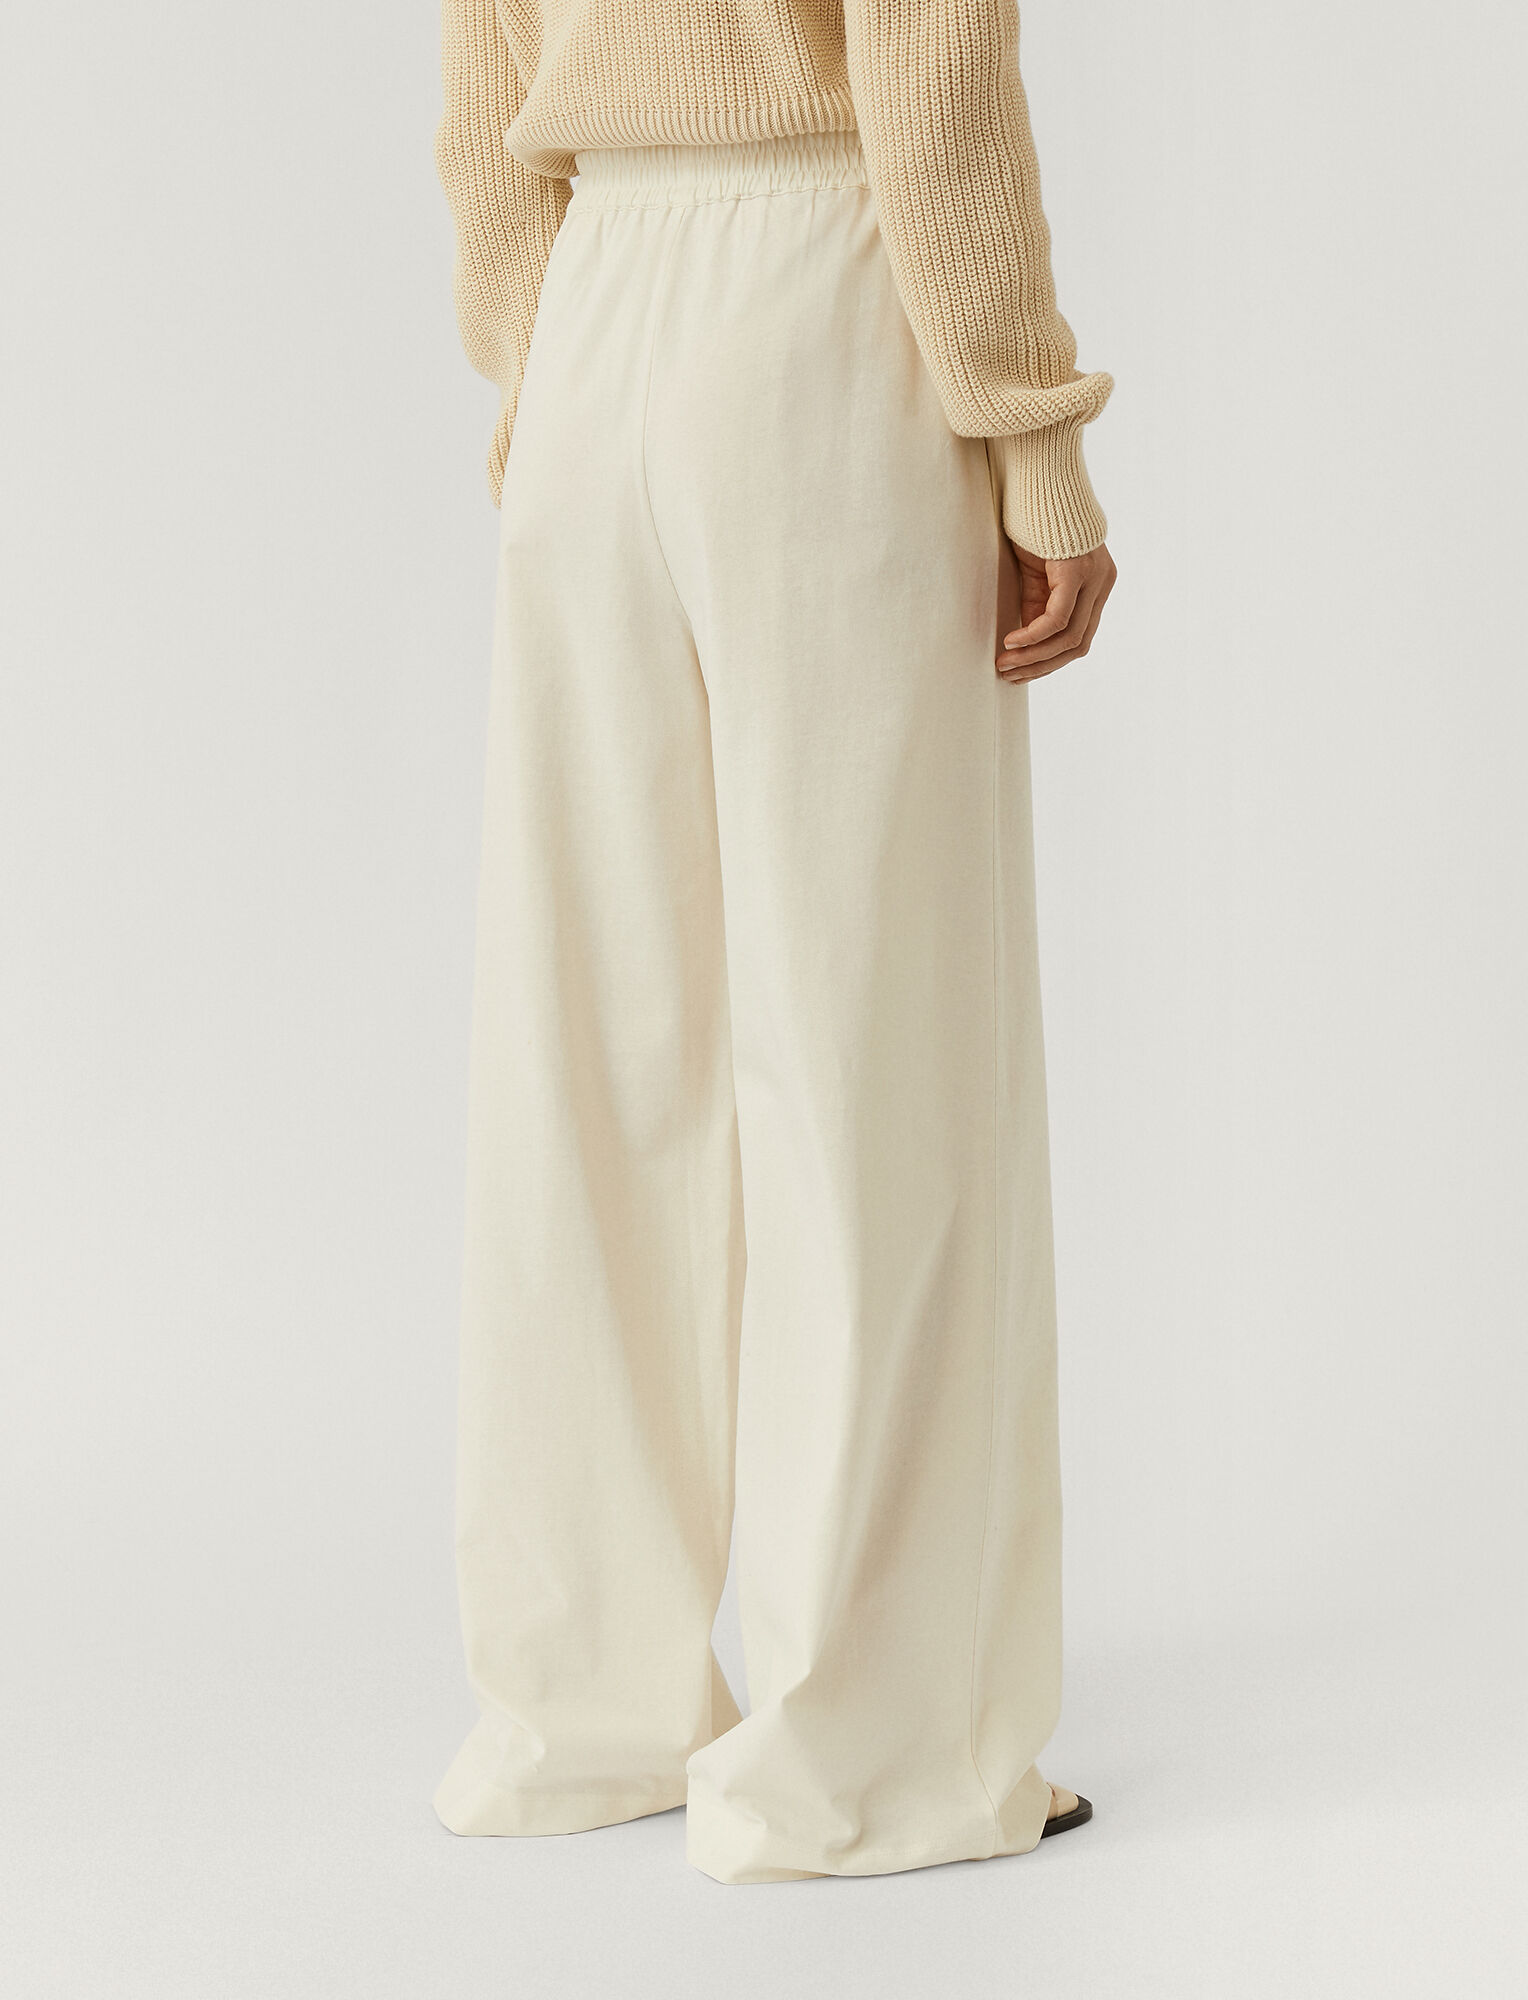 Joseph, Paper Jersey Trousers, in IVORY